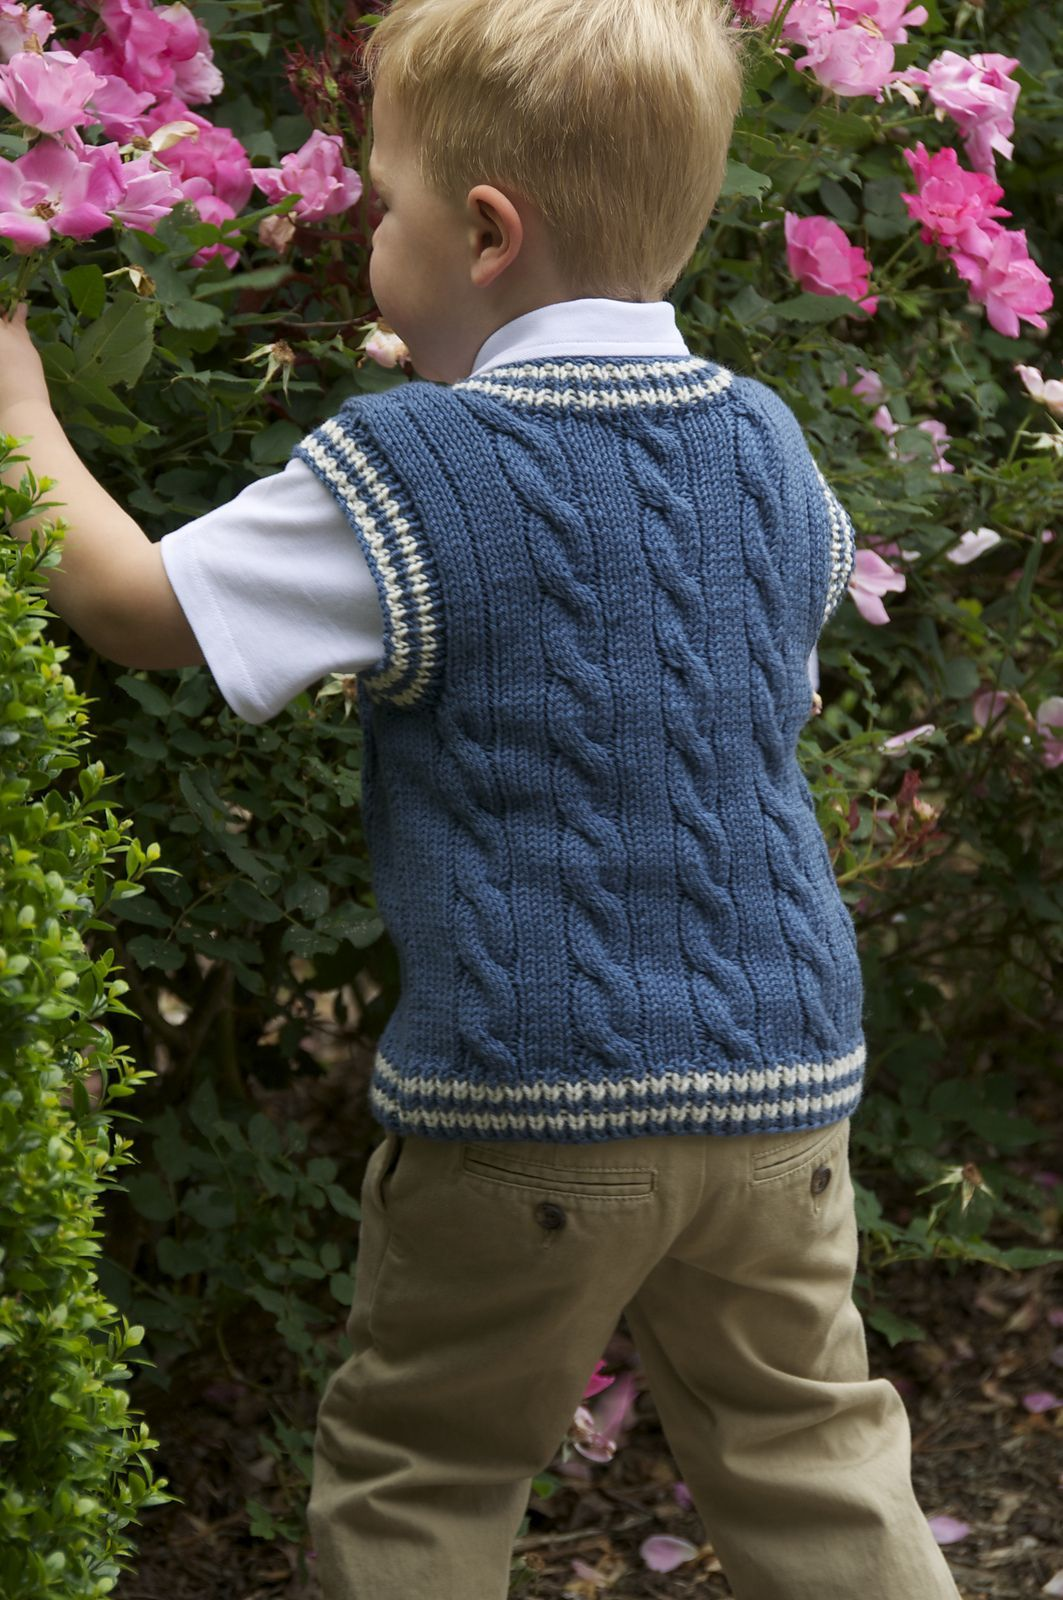 231b21422 Ravelry  Keene Toddler Vest by Marilyn Losee  toddlerVestsoutfit ...